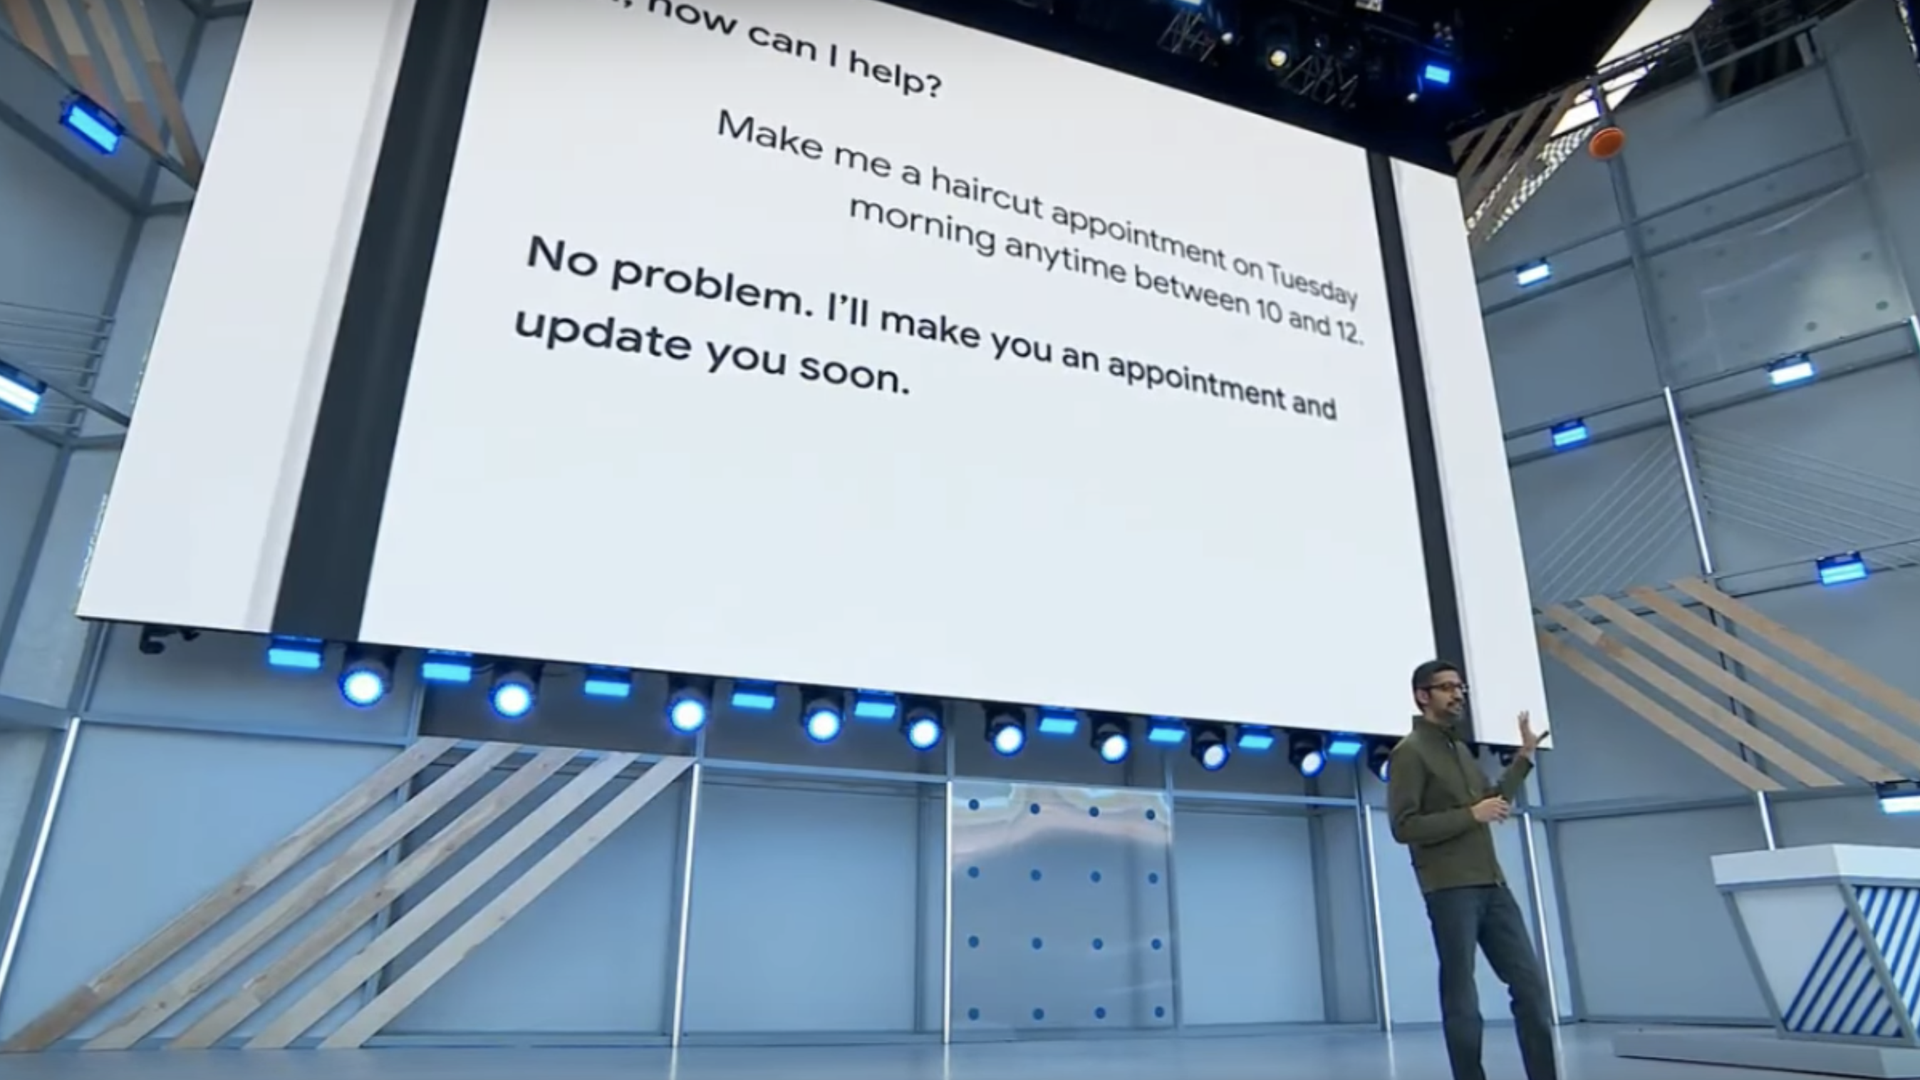 Google CEO Sundar Pichai demoing AI technology at Google I/O 2018